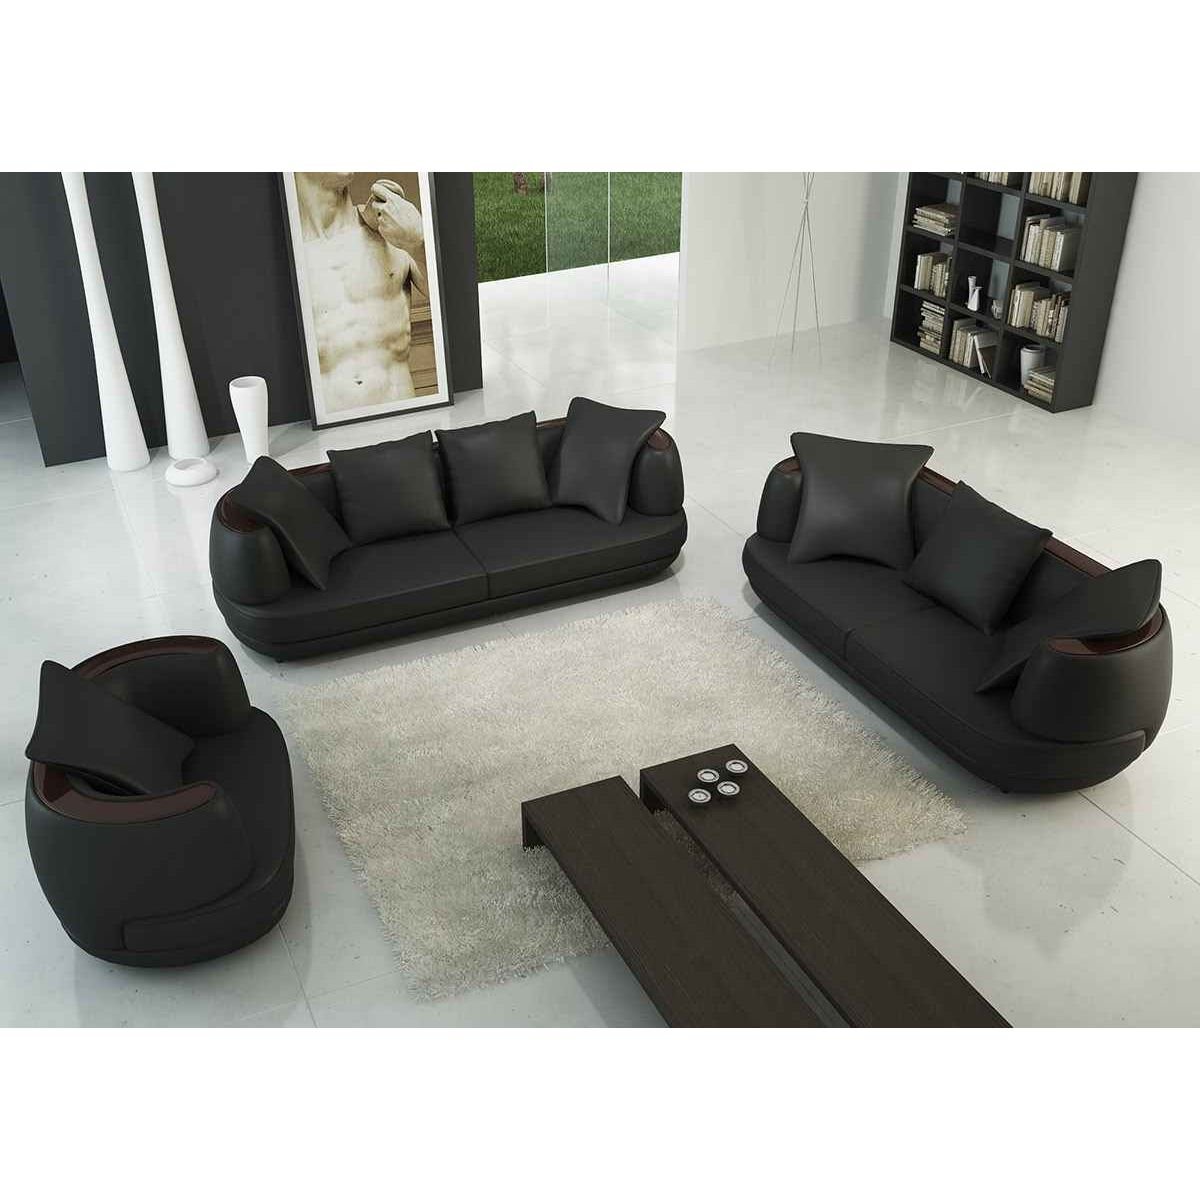 Deco in paris ensemble canape 3 2 1 places noir en cuir for Canape cuir noir